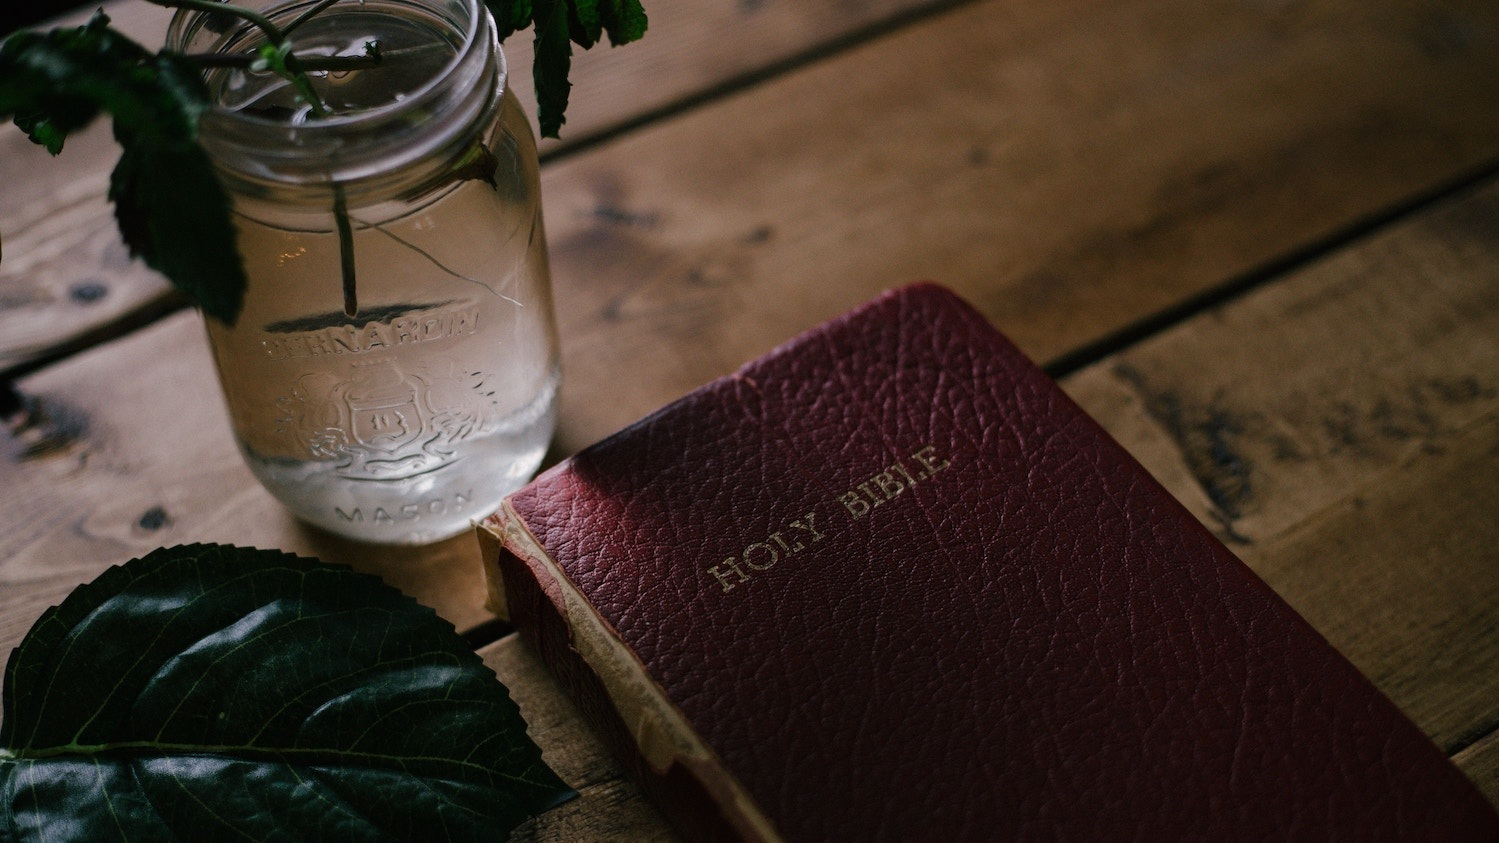 A maroon Bible on a wooden table with a plant inside of a mason jar